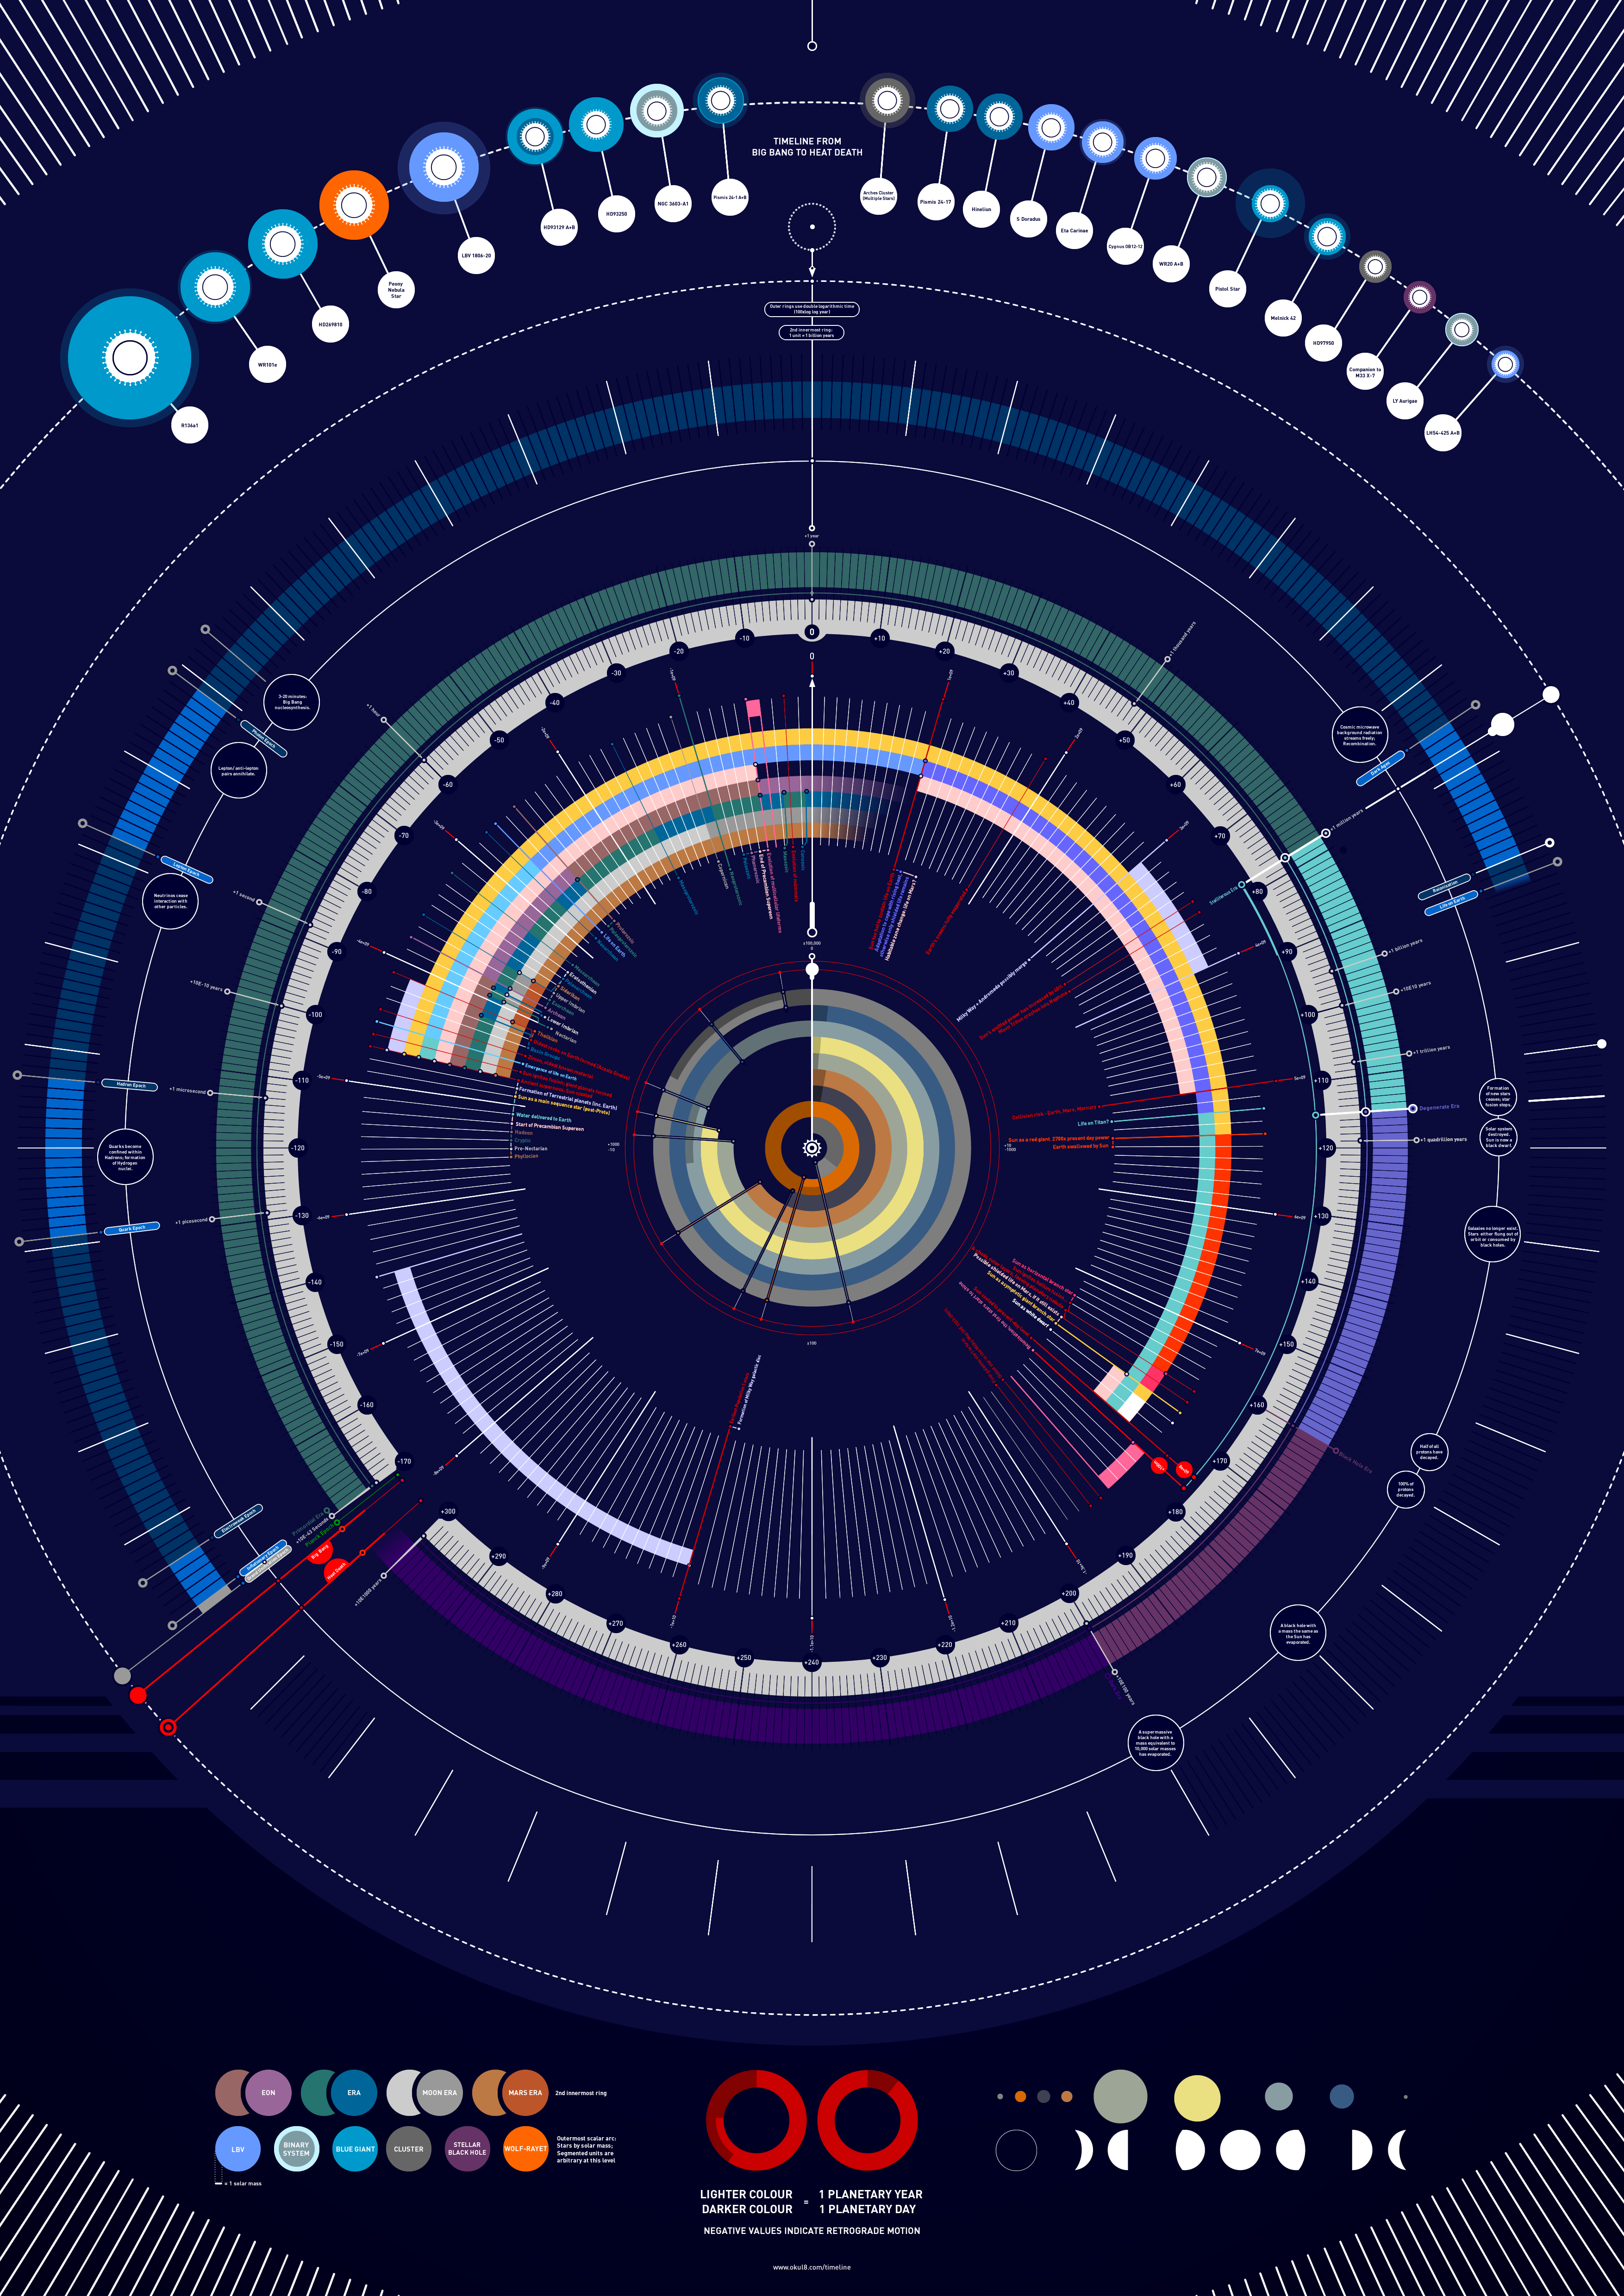 Timeline Of The Universe From Big Bang To Heat Data